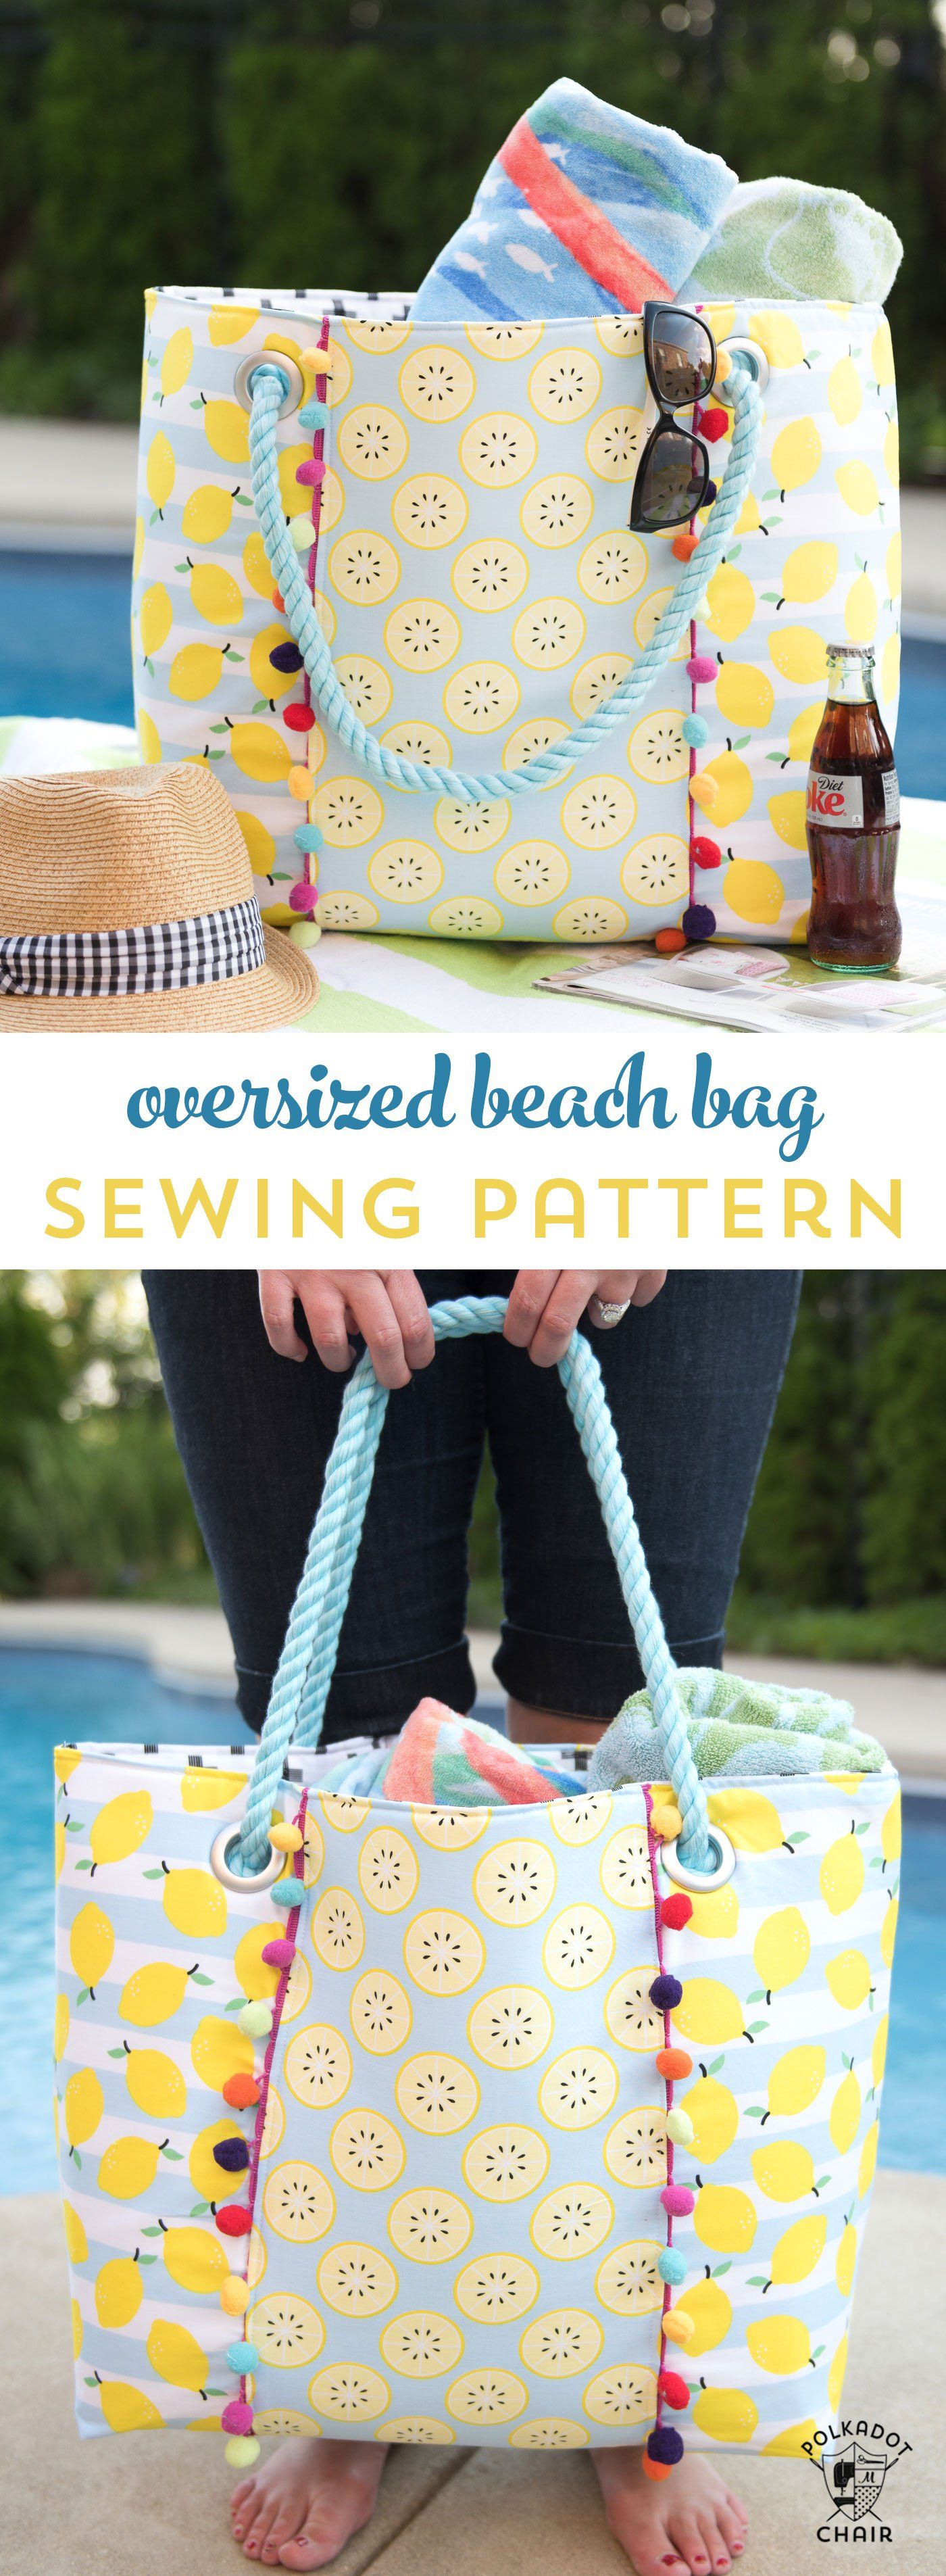 Oversized Beach Bag Sewing Pattern #bagsewingpatterns